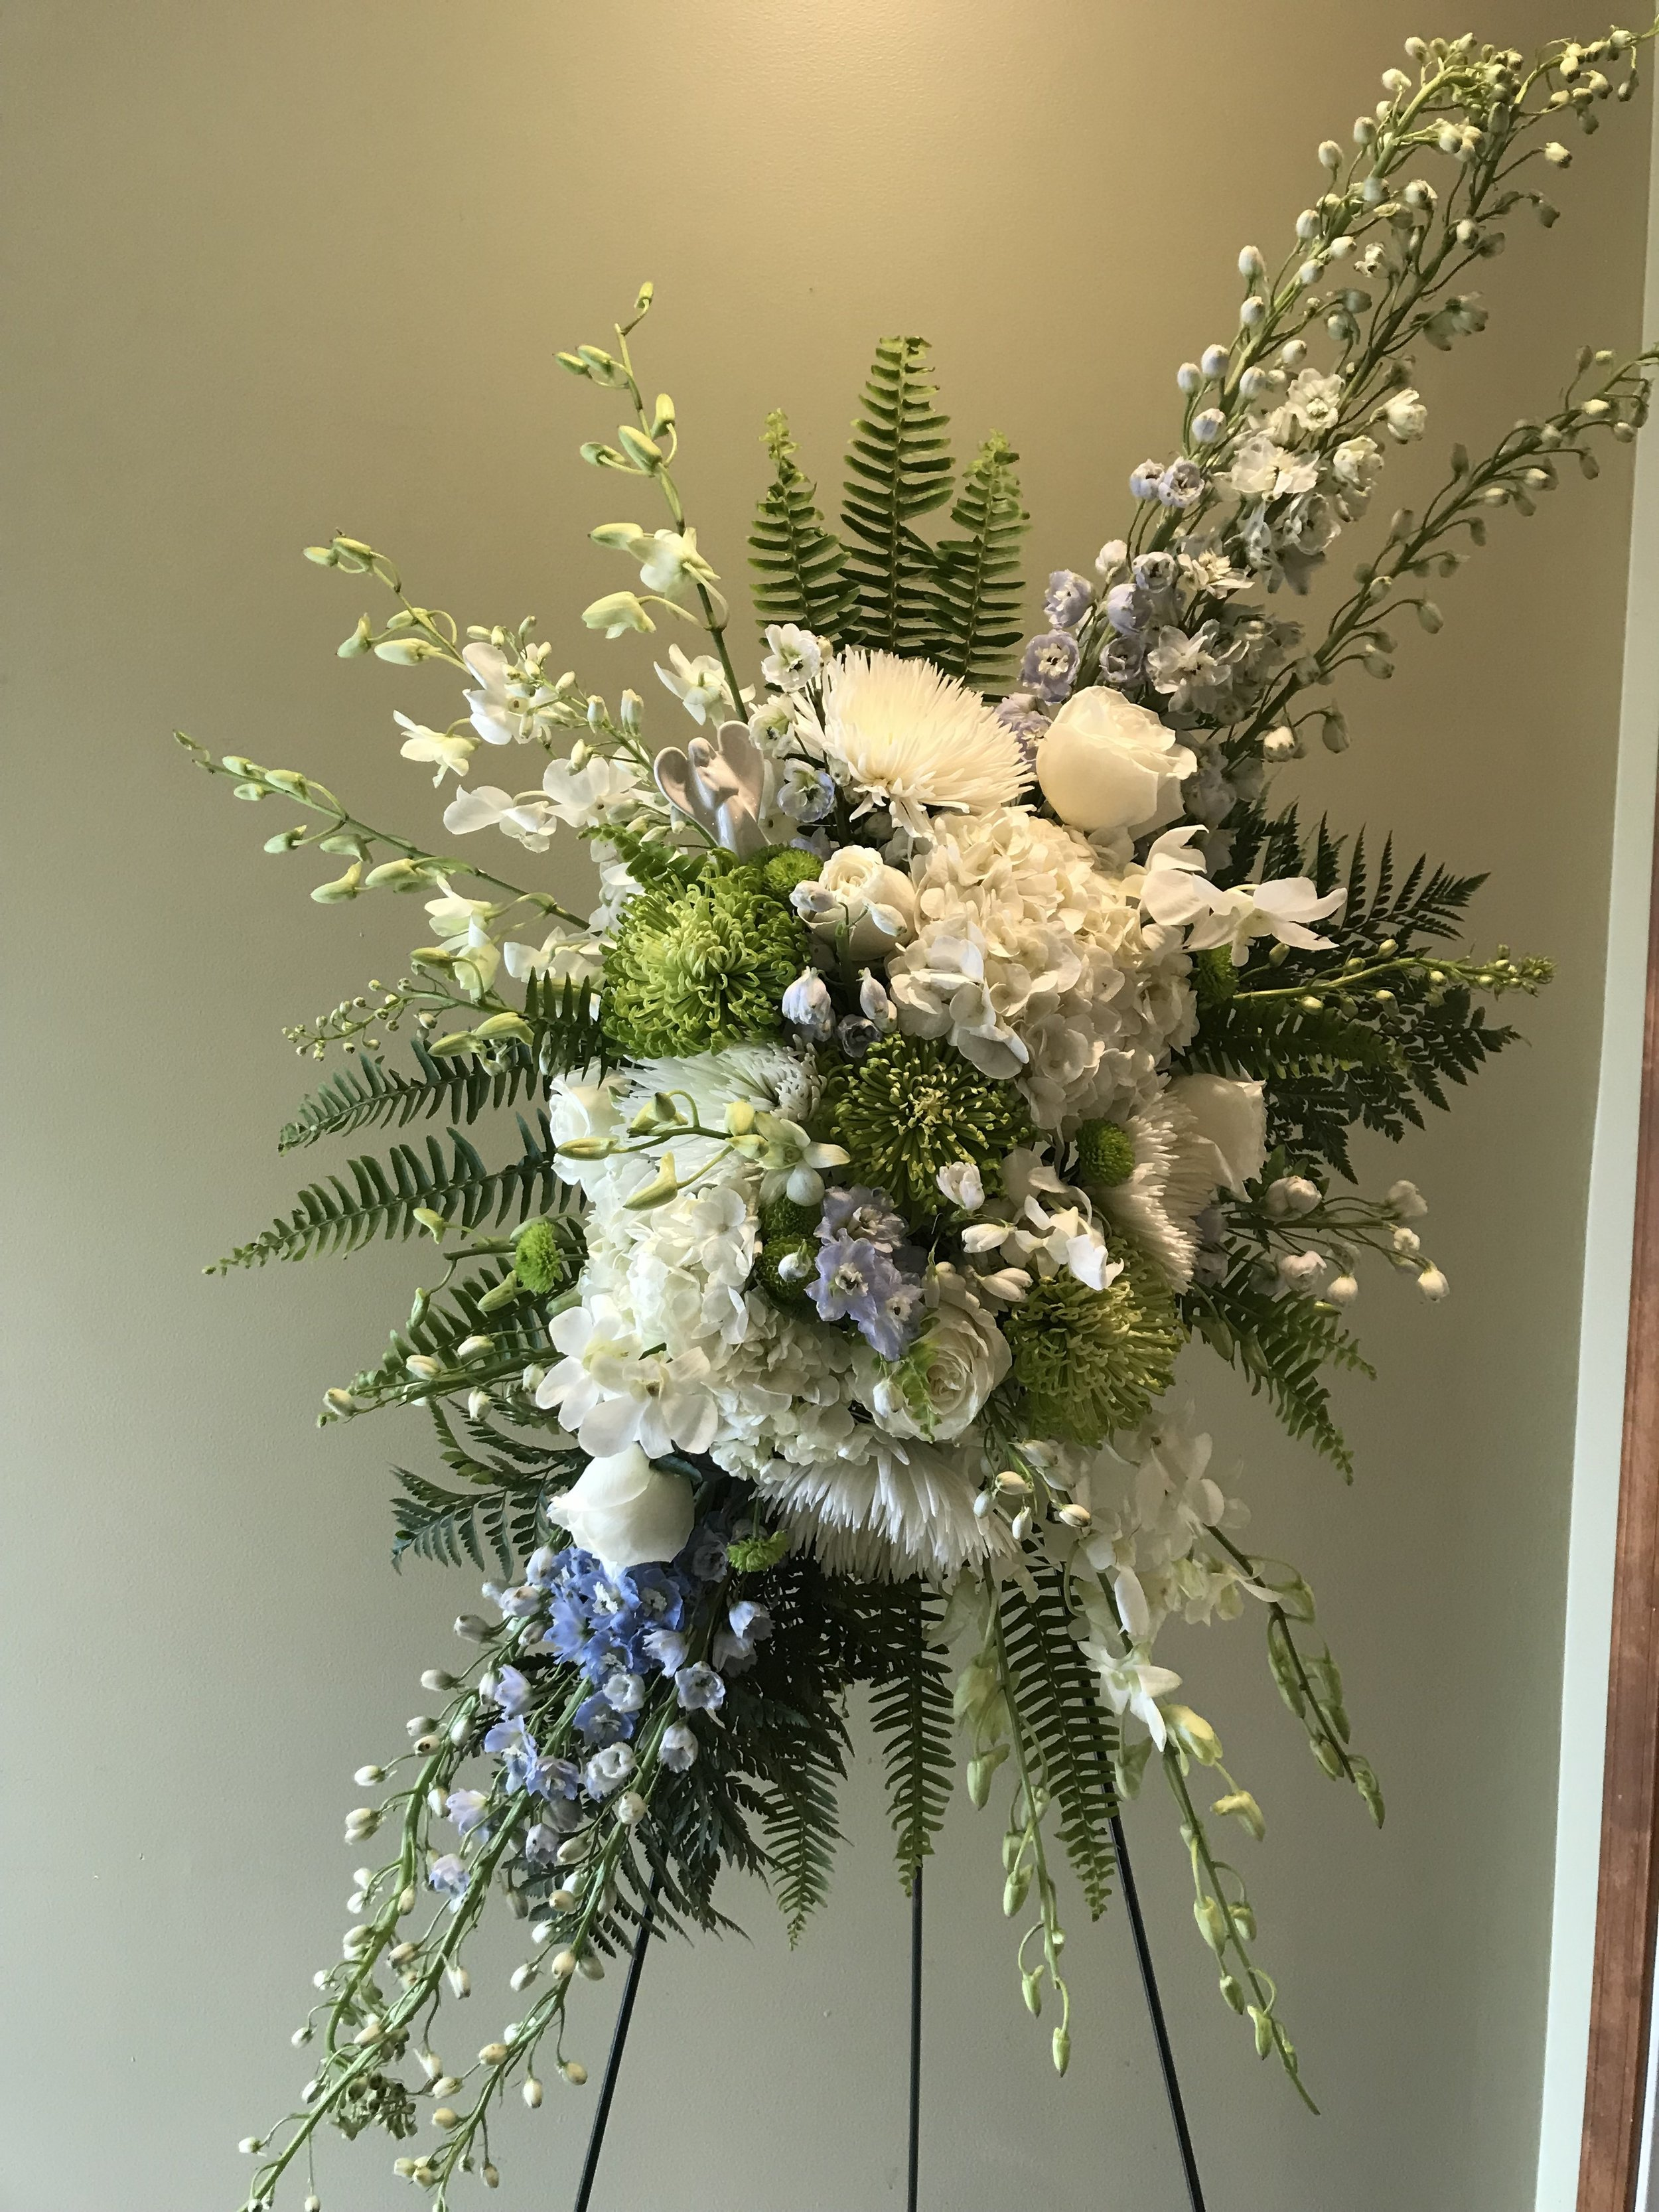 Easel Spray - $ 300.00White Orchid, Blue Delphinium, White Rose, White and Green Spider Mum,Green Button Mum, White Hydrangea.